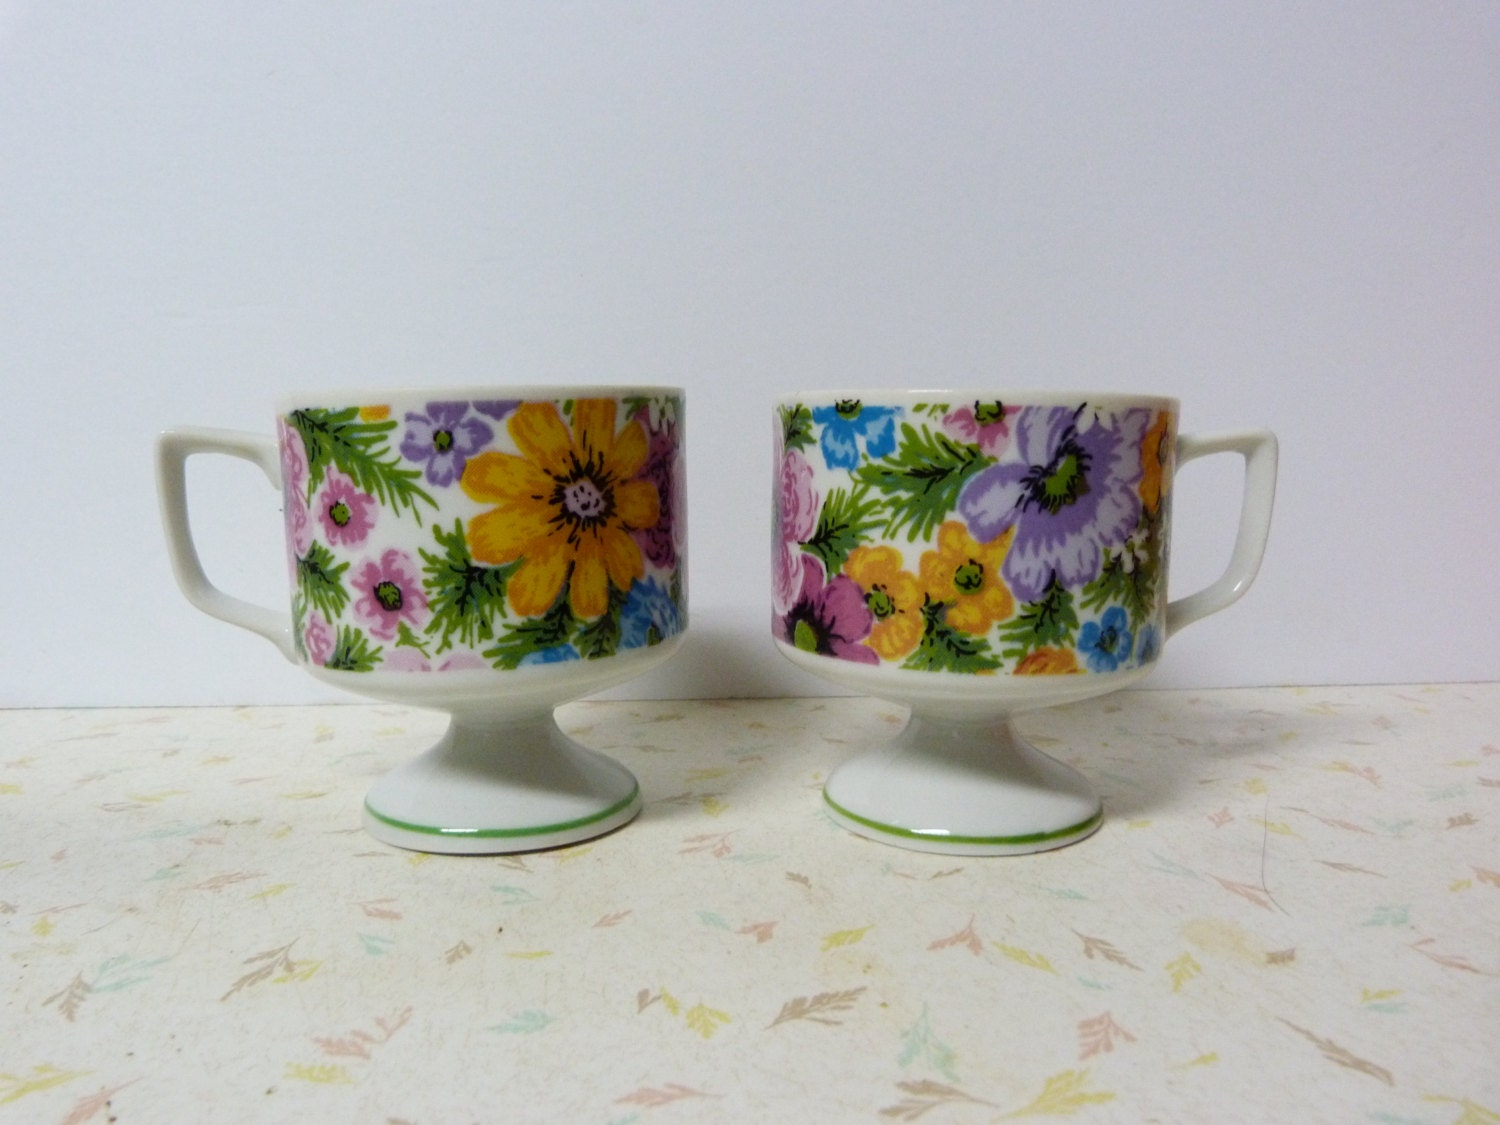 Vintage Mid Century Modern Coffee Mugs Stacking By